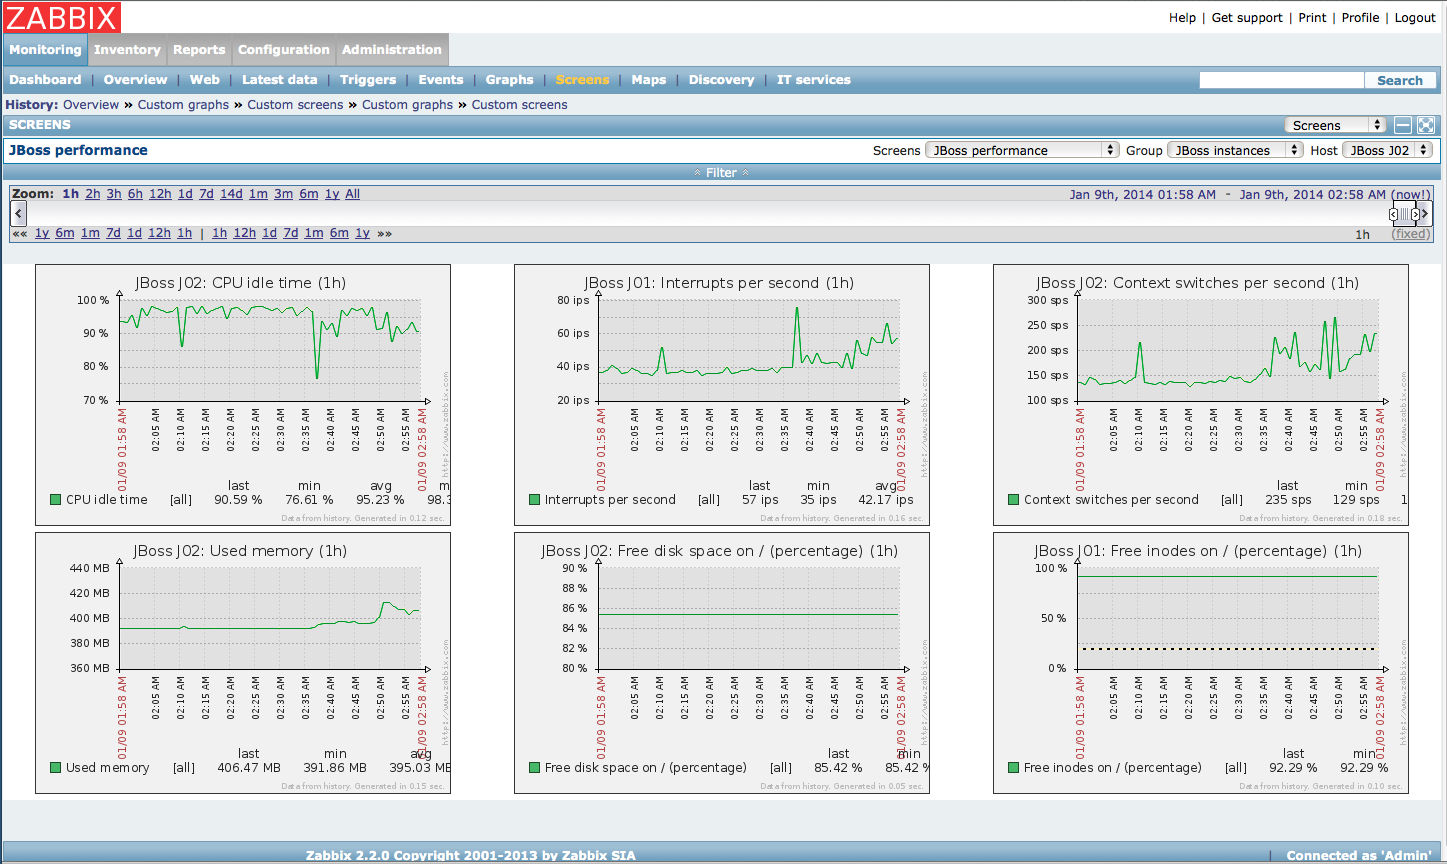 Zabbix Screenshots